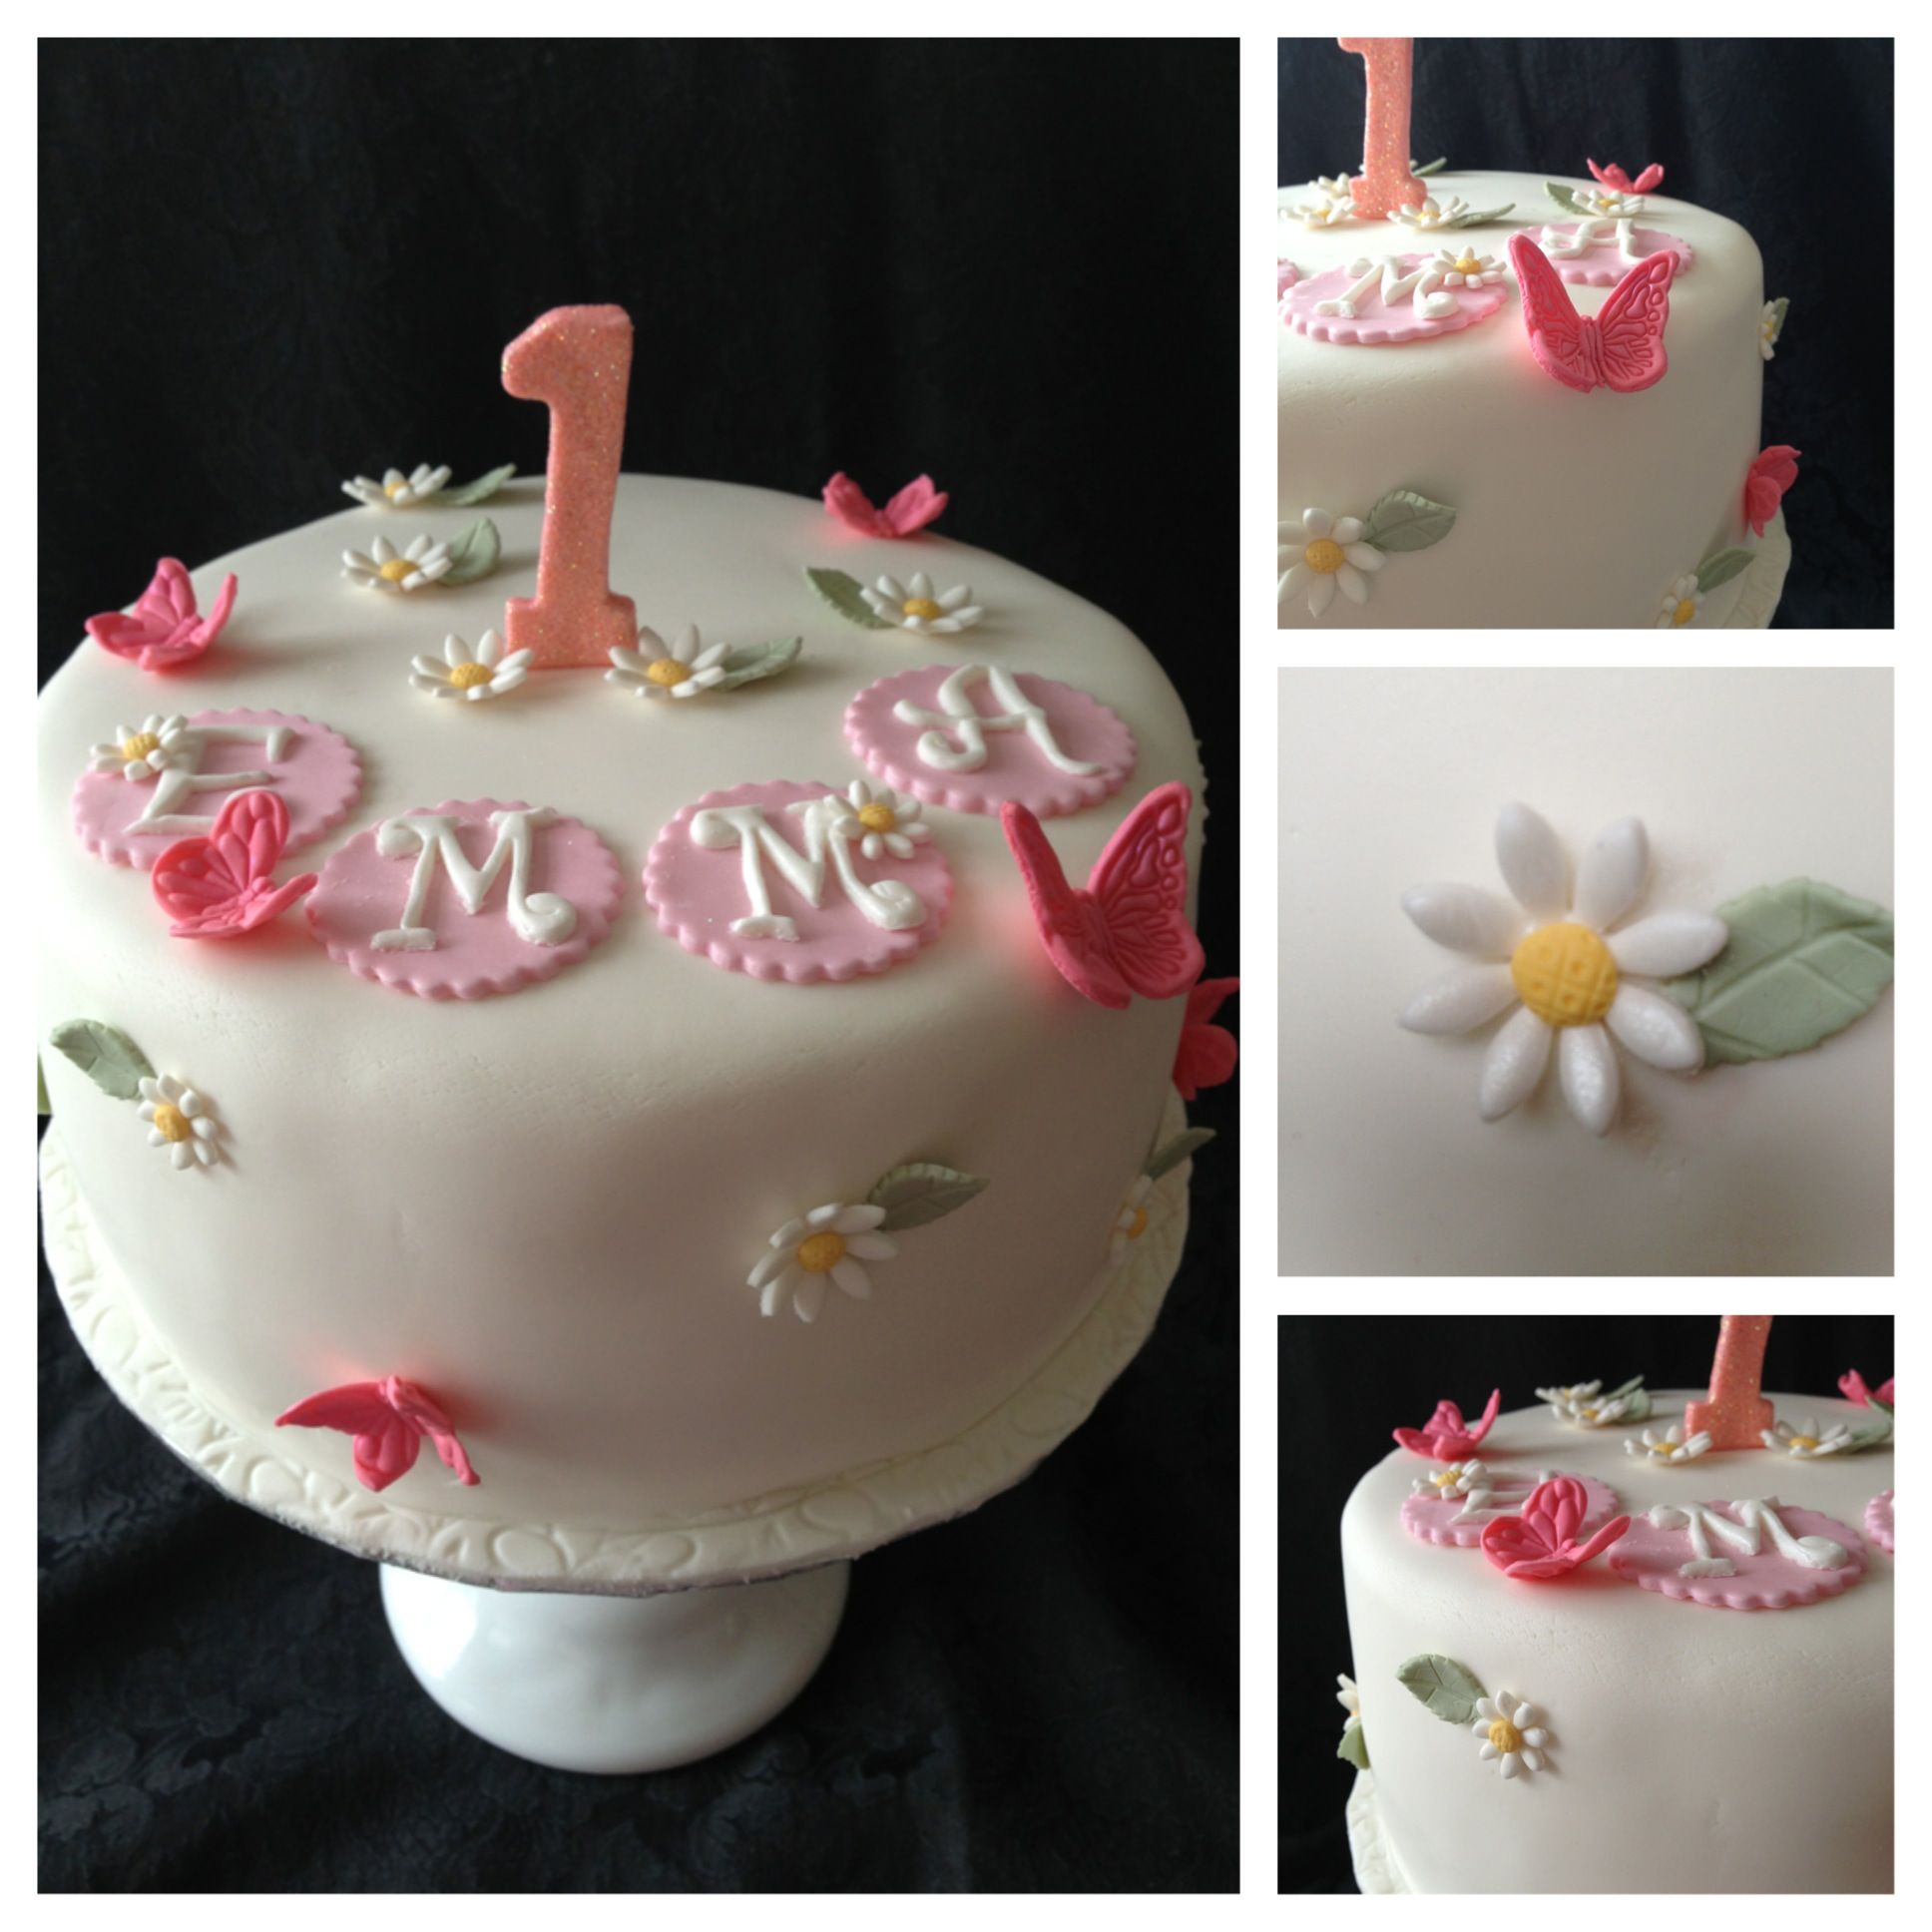 My Cake Fresh And Pretty Daisies And Butterflies For A Little